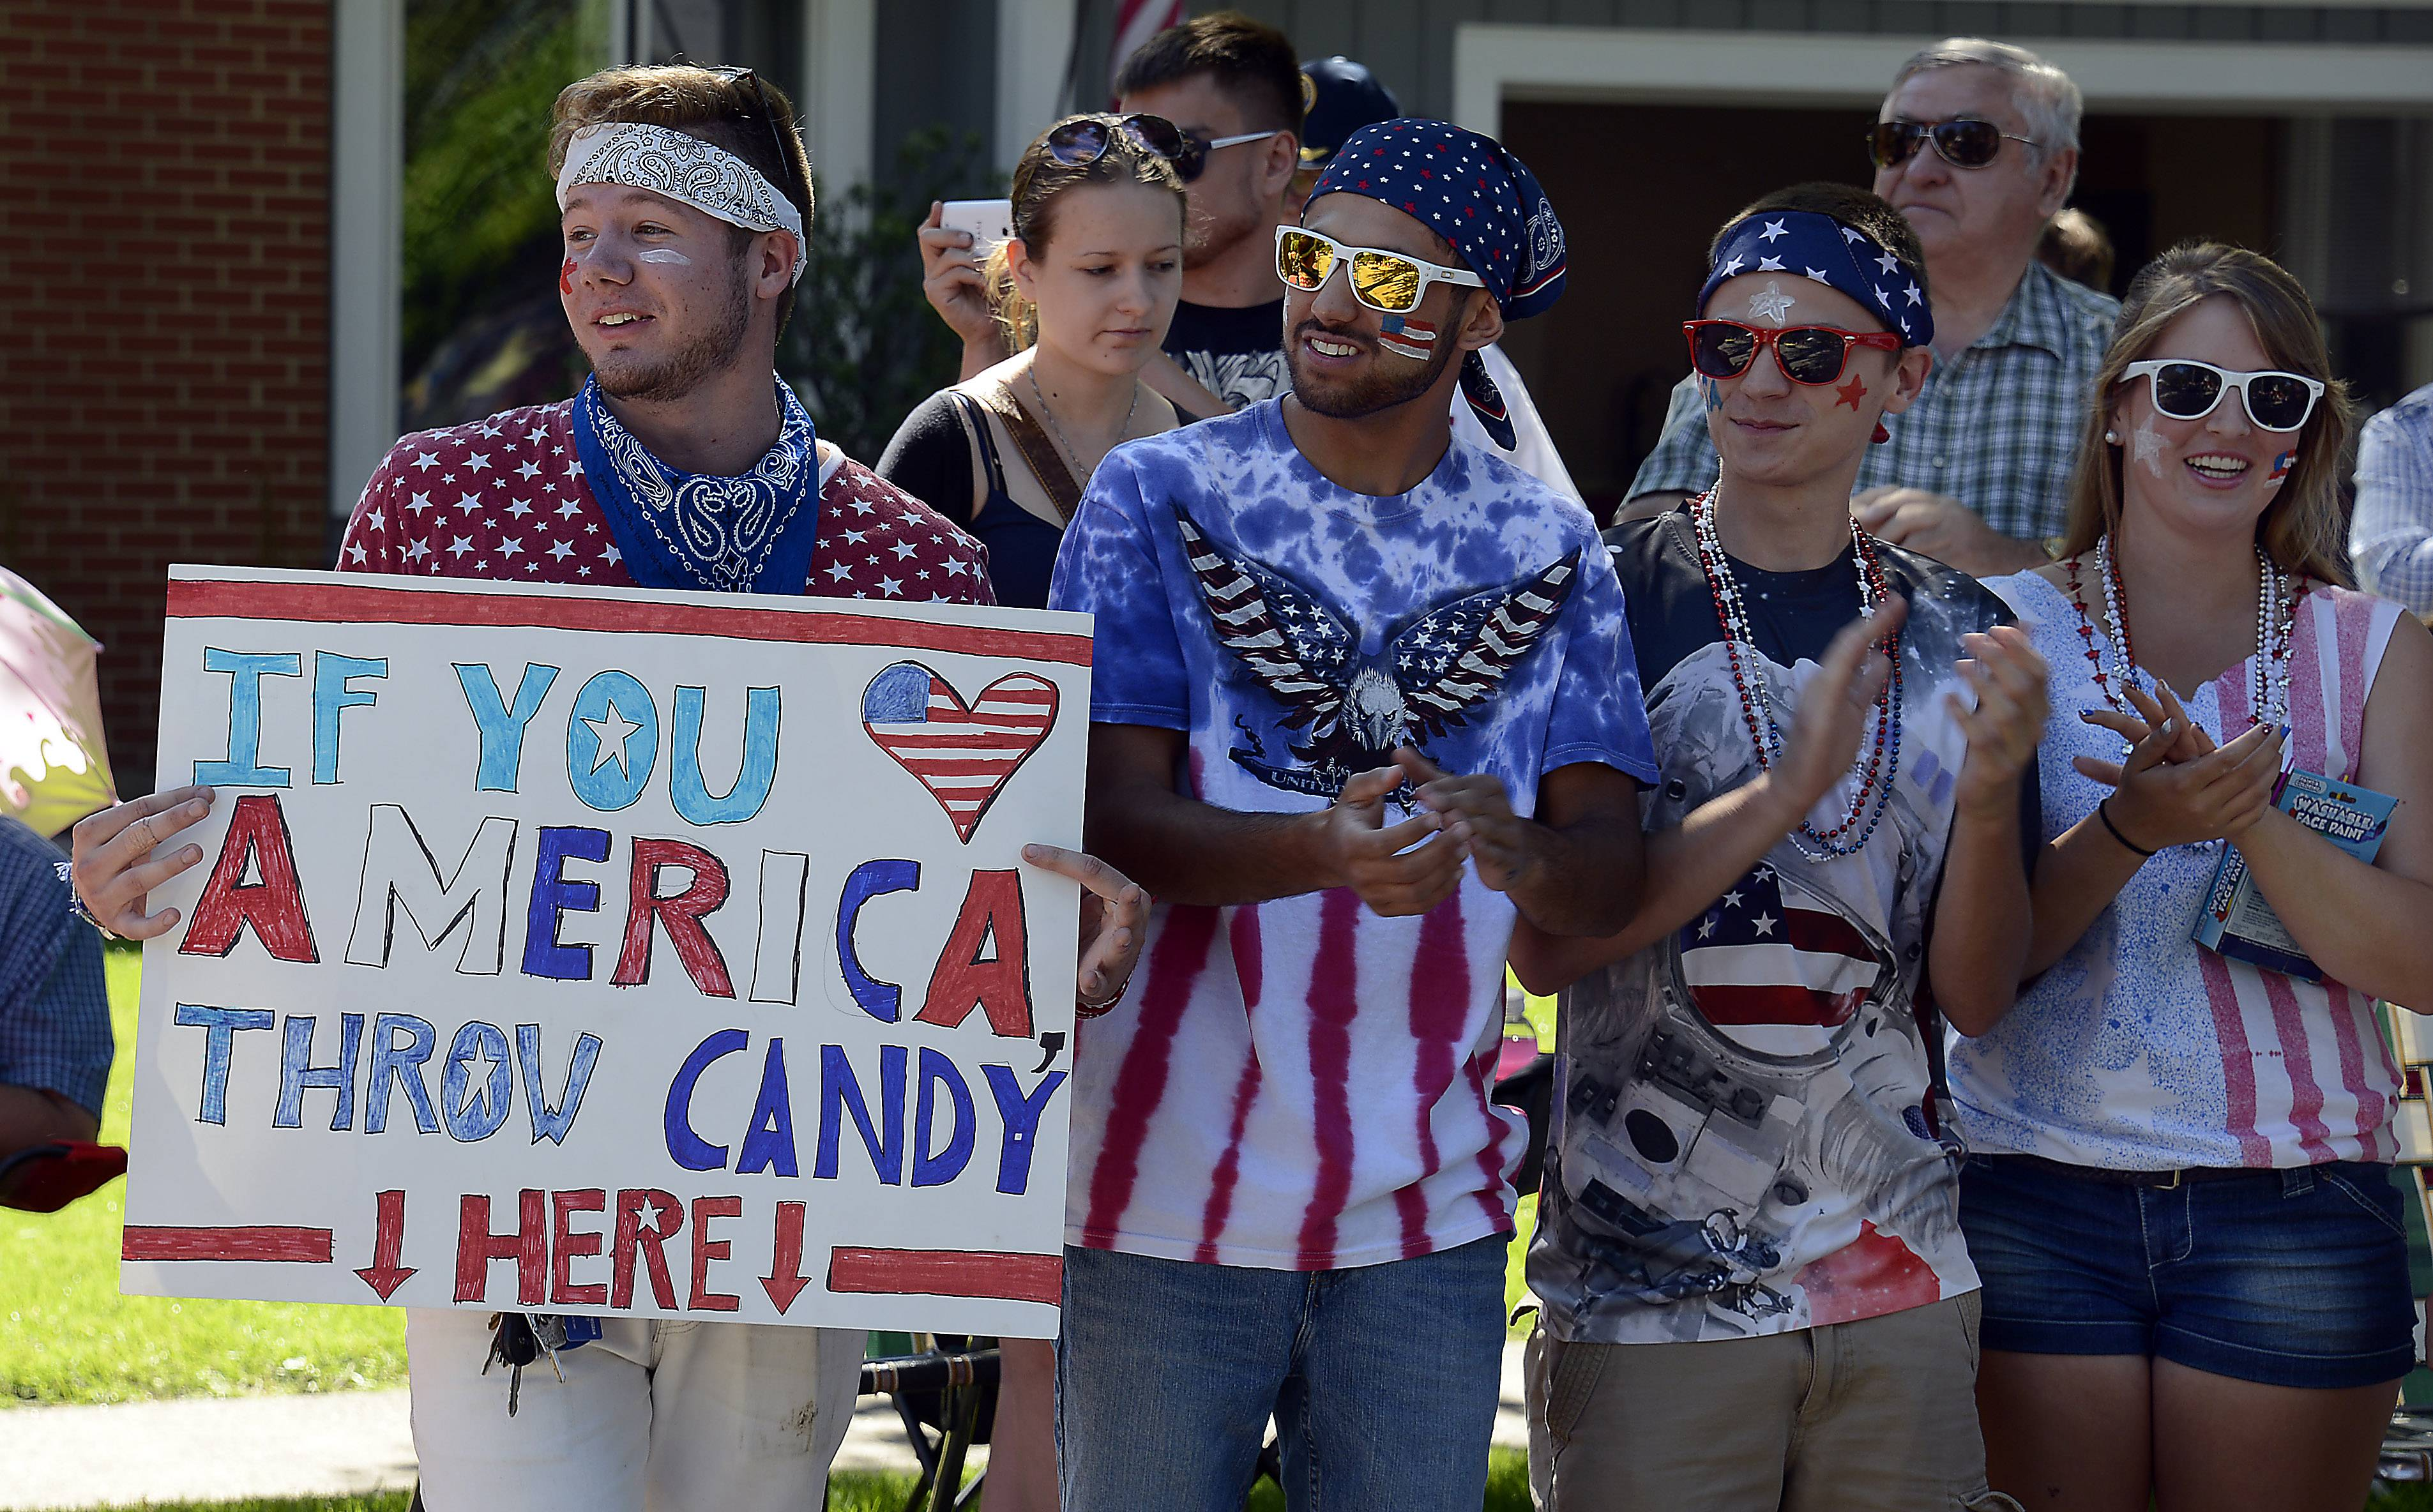 Michael Johnson and Jake Priester, both of Prospect Heights, try their best to get candy at the Arlington Heights Fourth of July parade Friday.